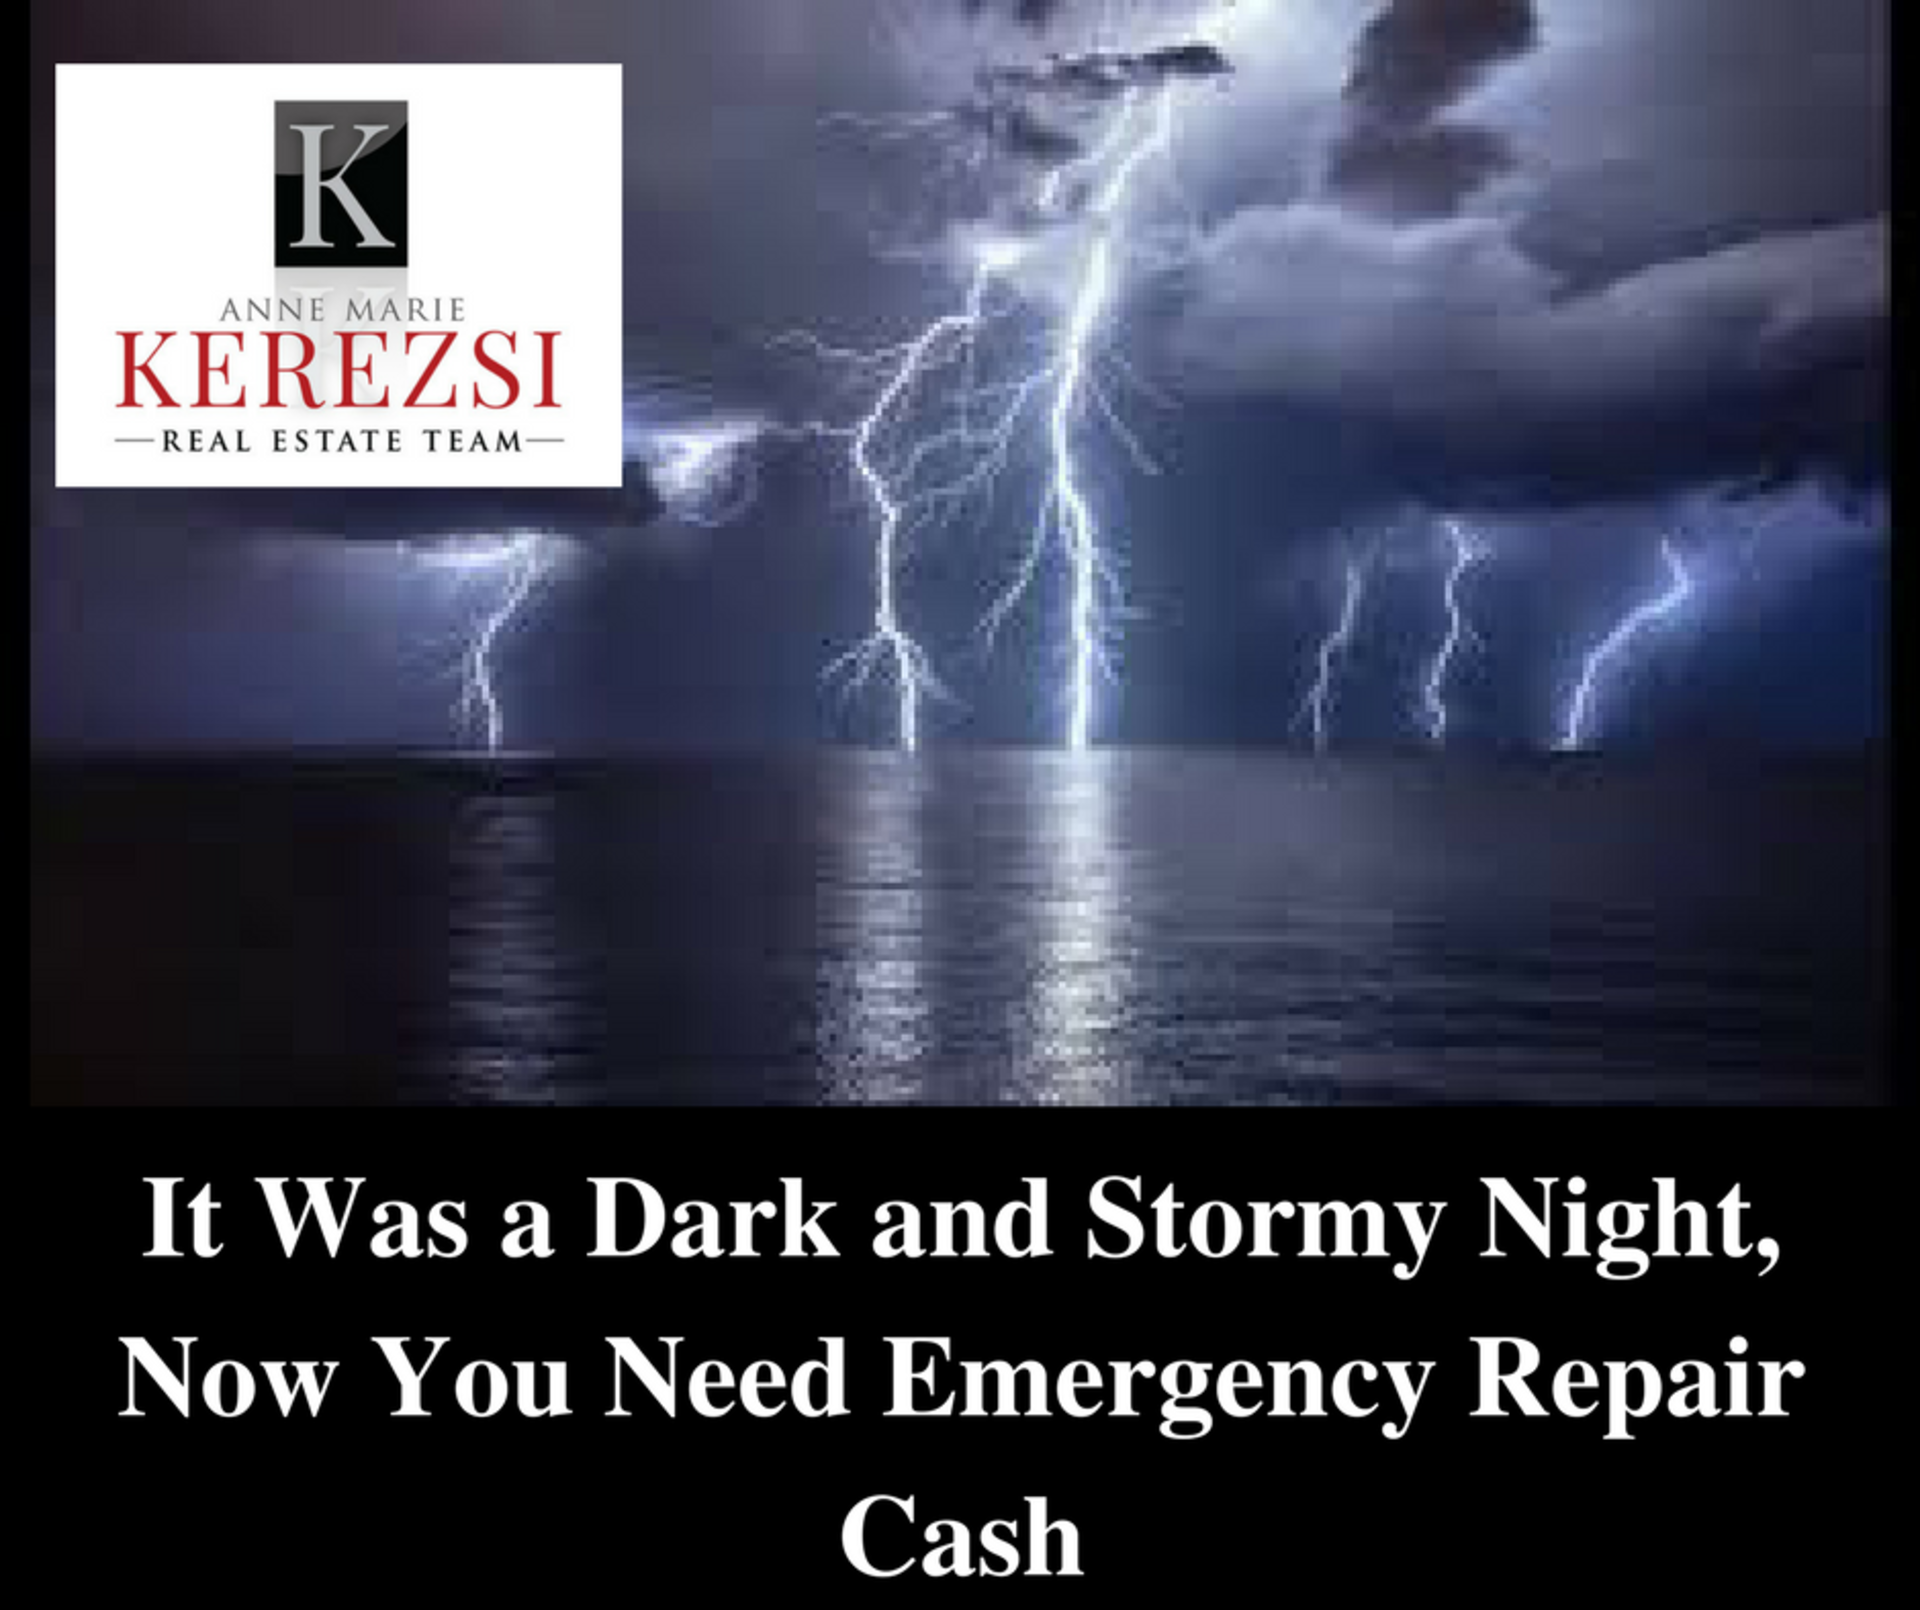 It Was a Dark and Stormy Night, Now You Need Emergency Repair Cash (from Home Keepr)